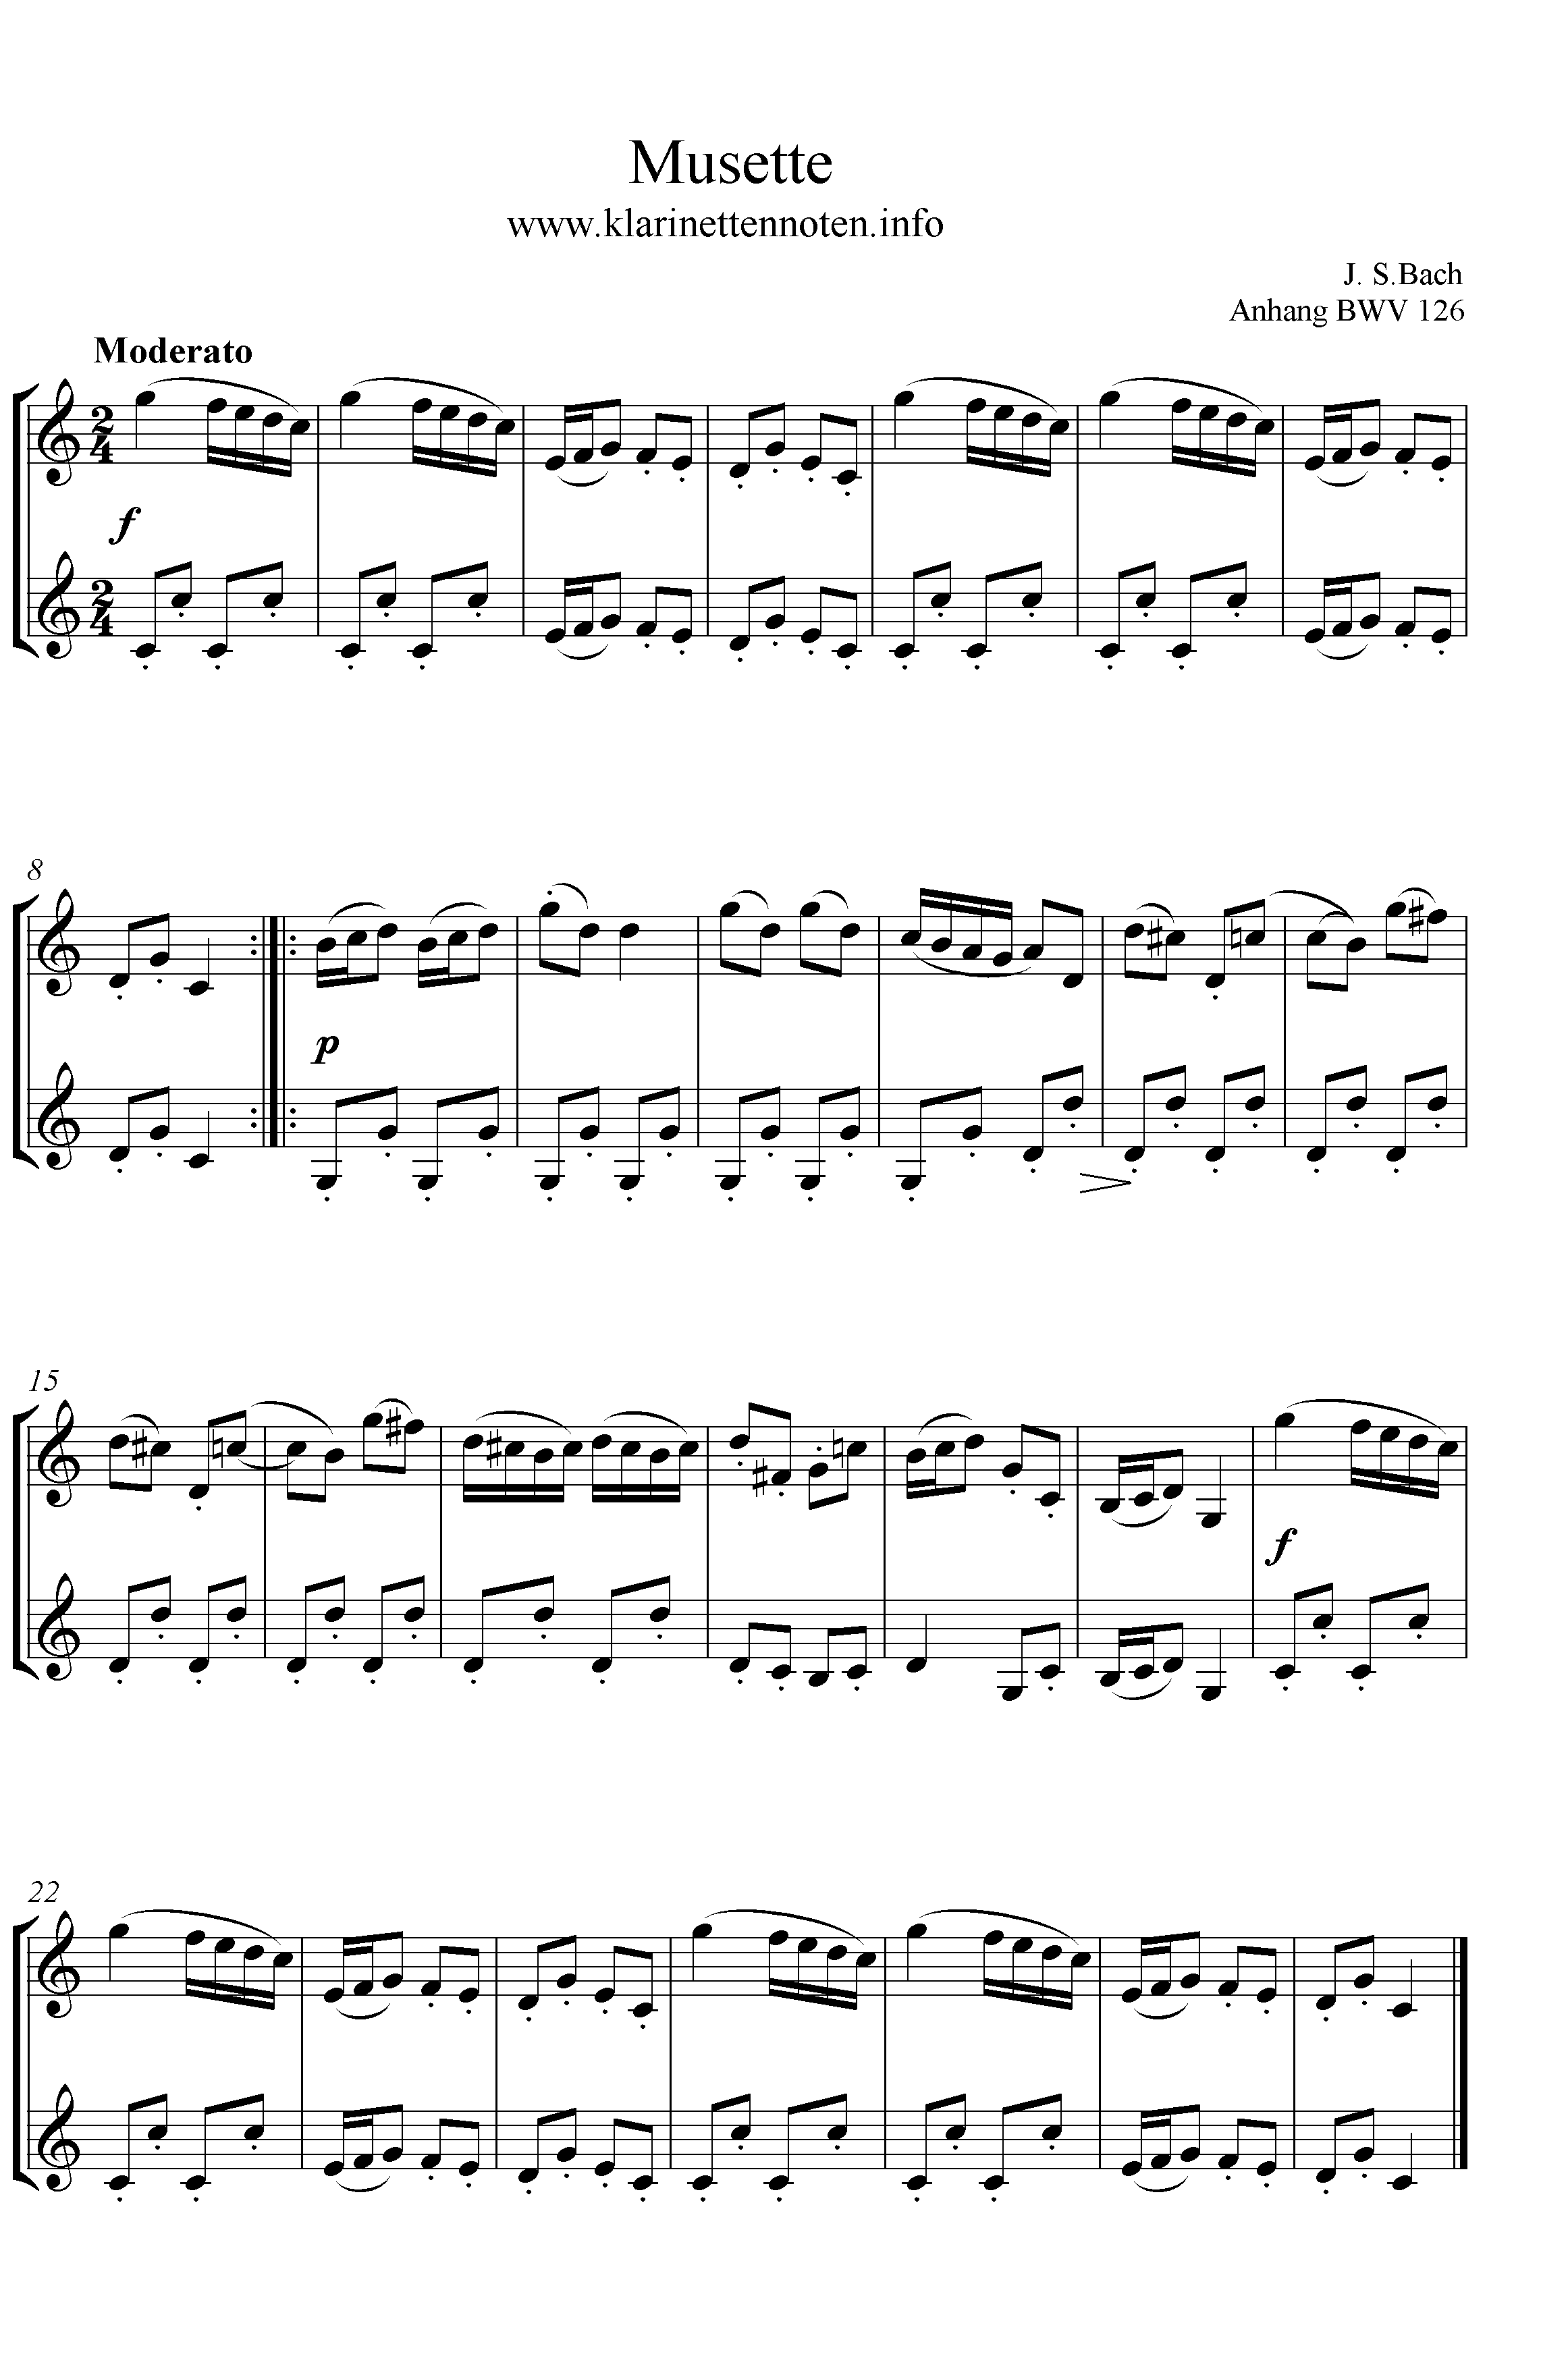 Musette Note, BWV 126 Anhang, Familie Petz, Noten